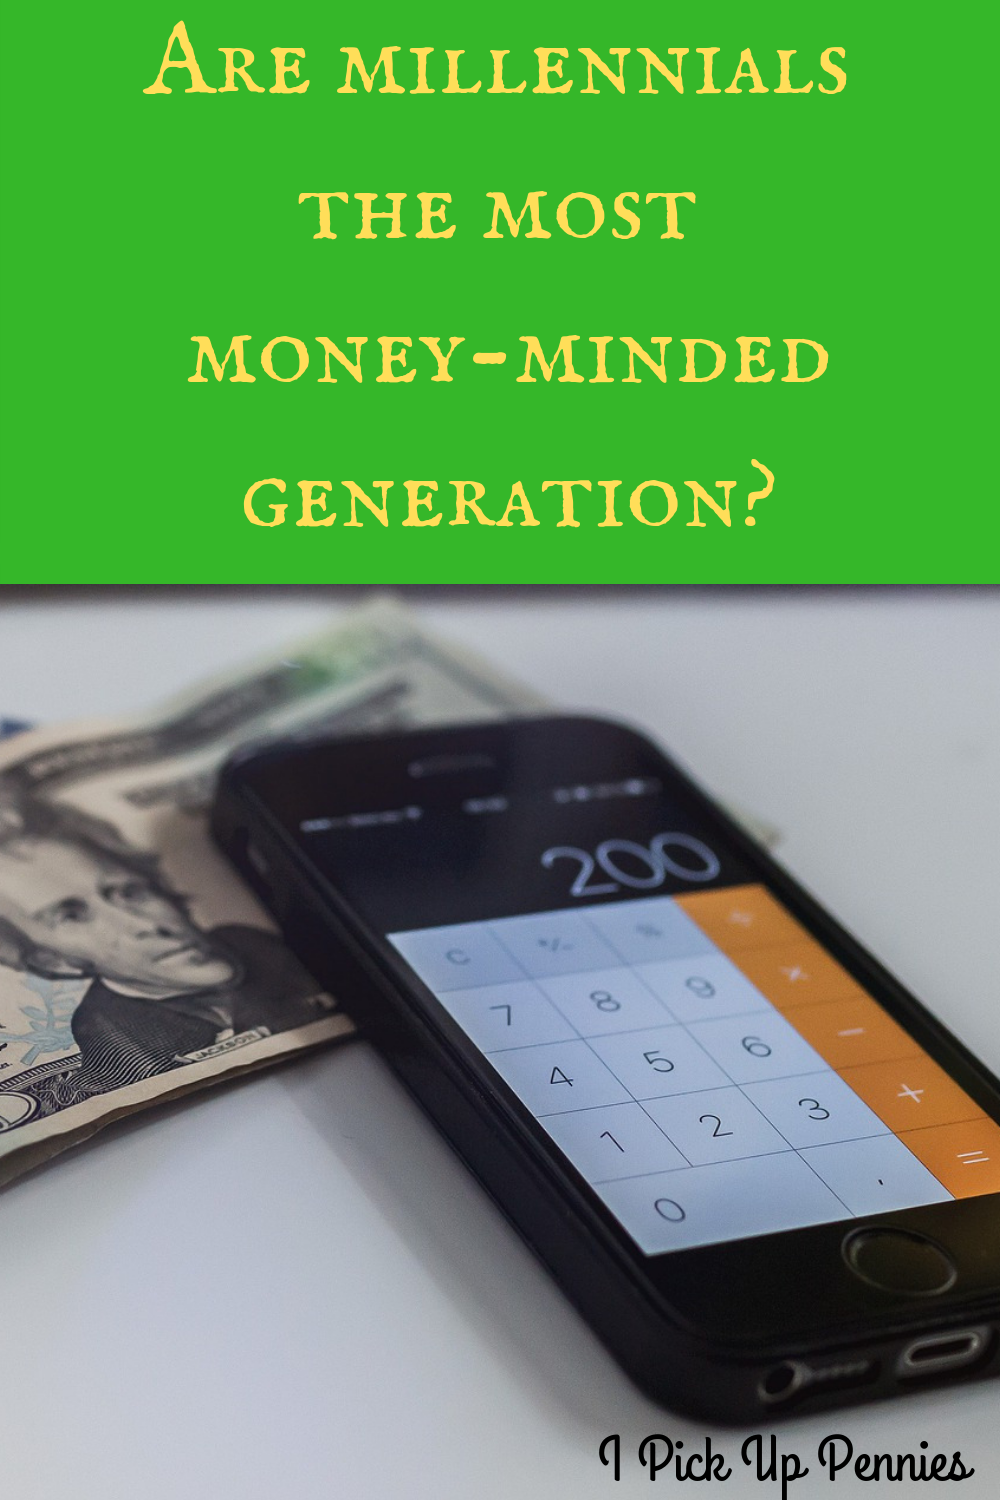 Millennials might be the generation most focused on personal finance!